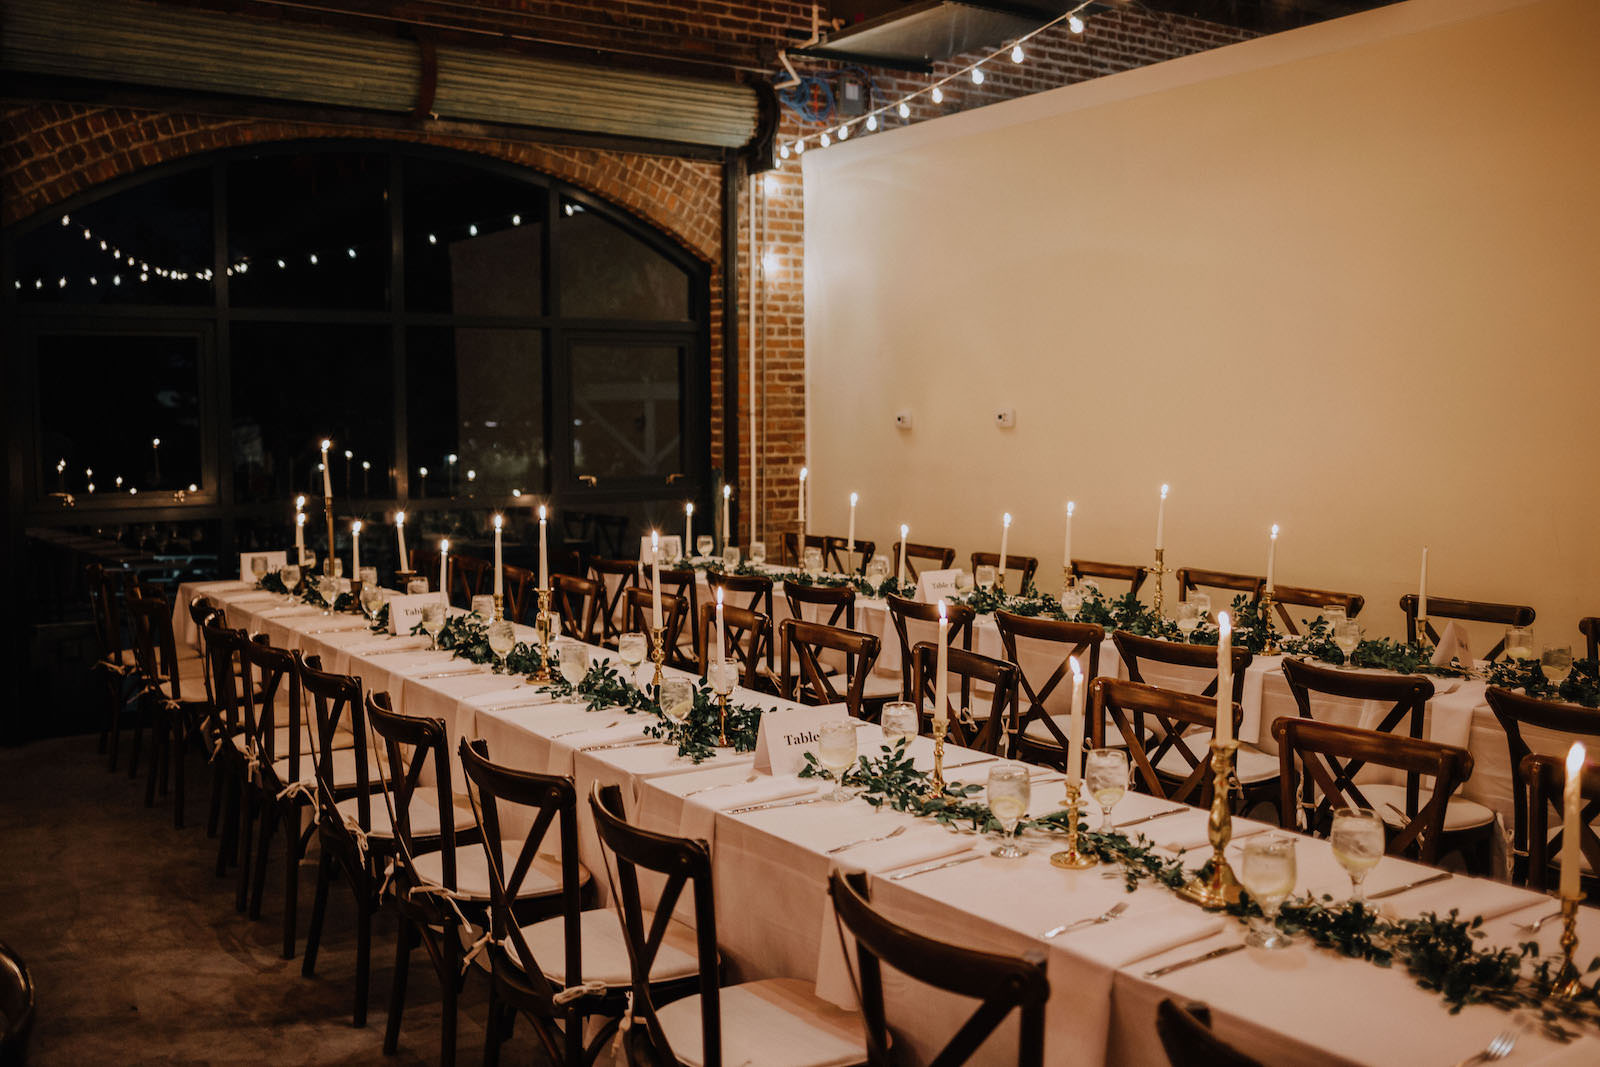 Rustic Boho Wedding Reception Feasting Tables with Gold Candle Centerpieces, Greenery Garland, and French Country Chairs | St. Pete Wedding Florist Posies Flower Truck